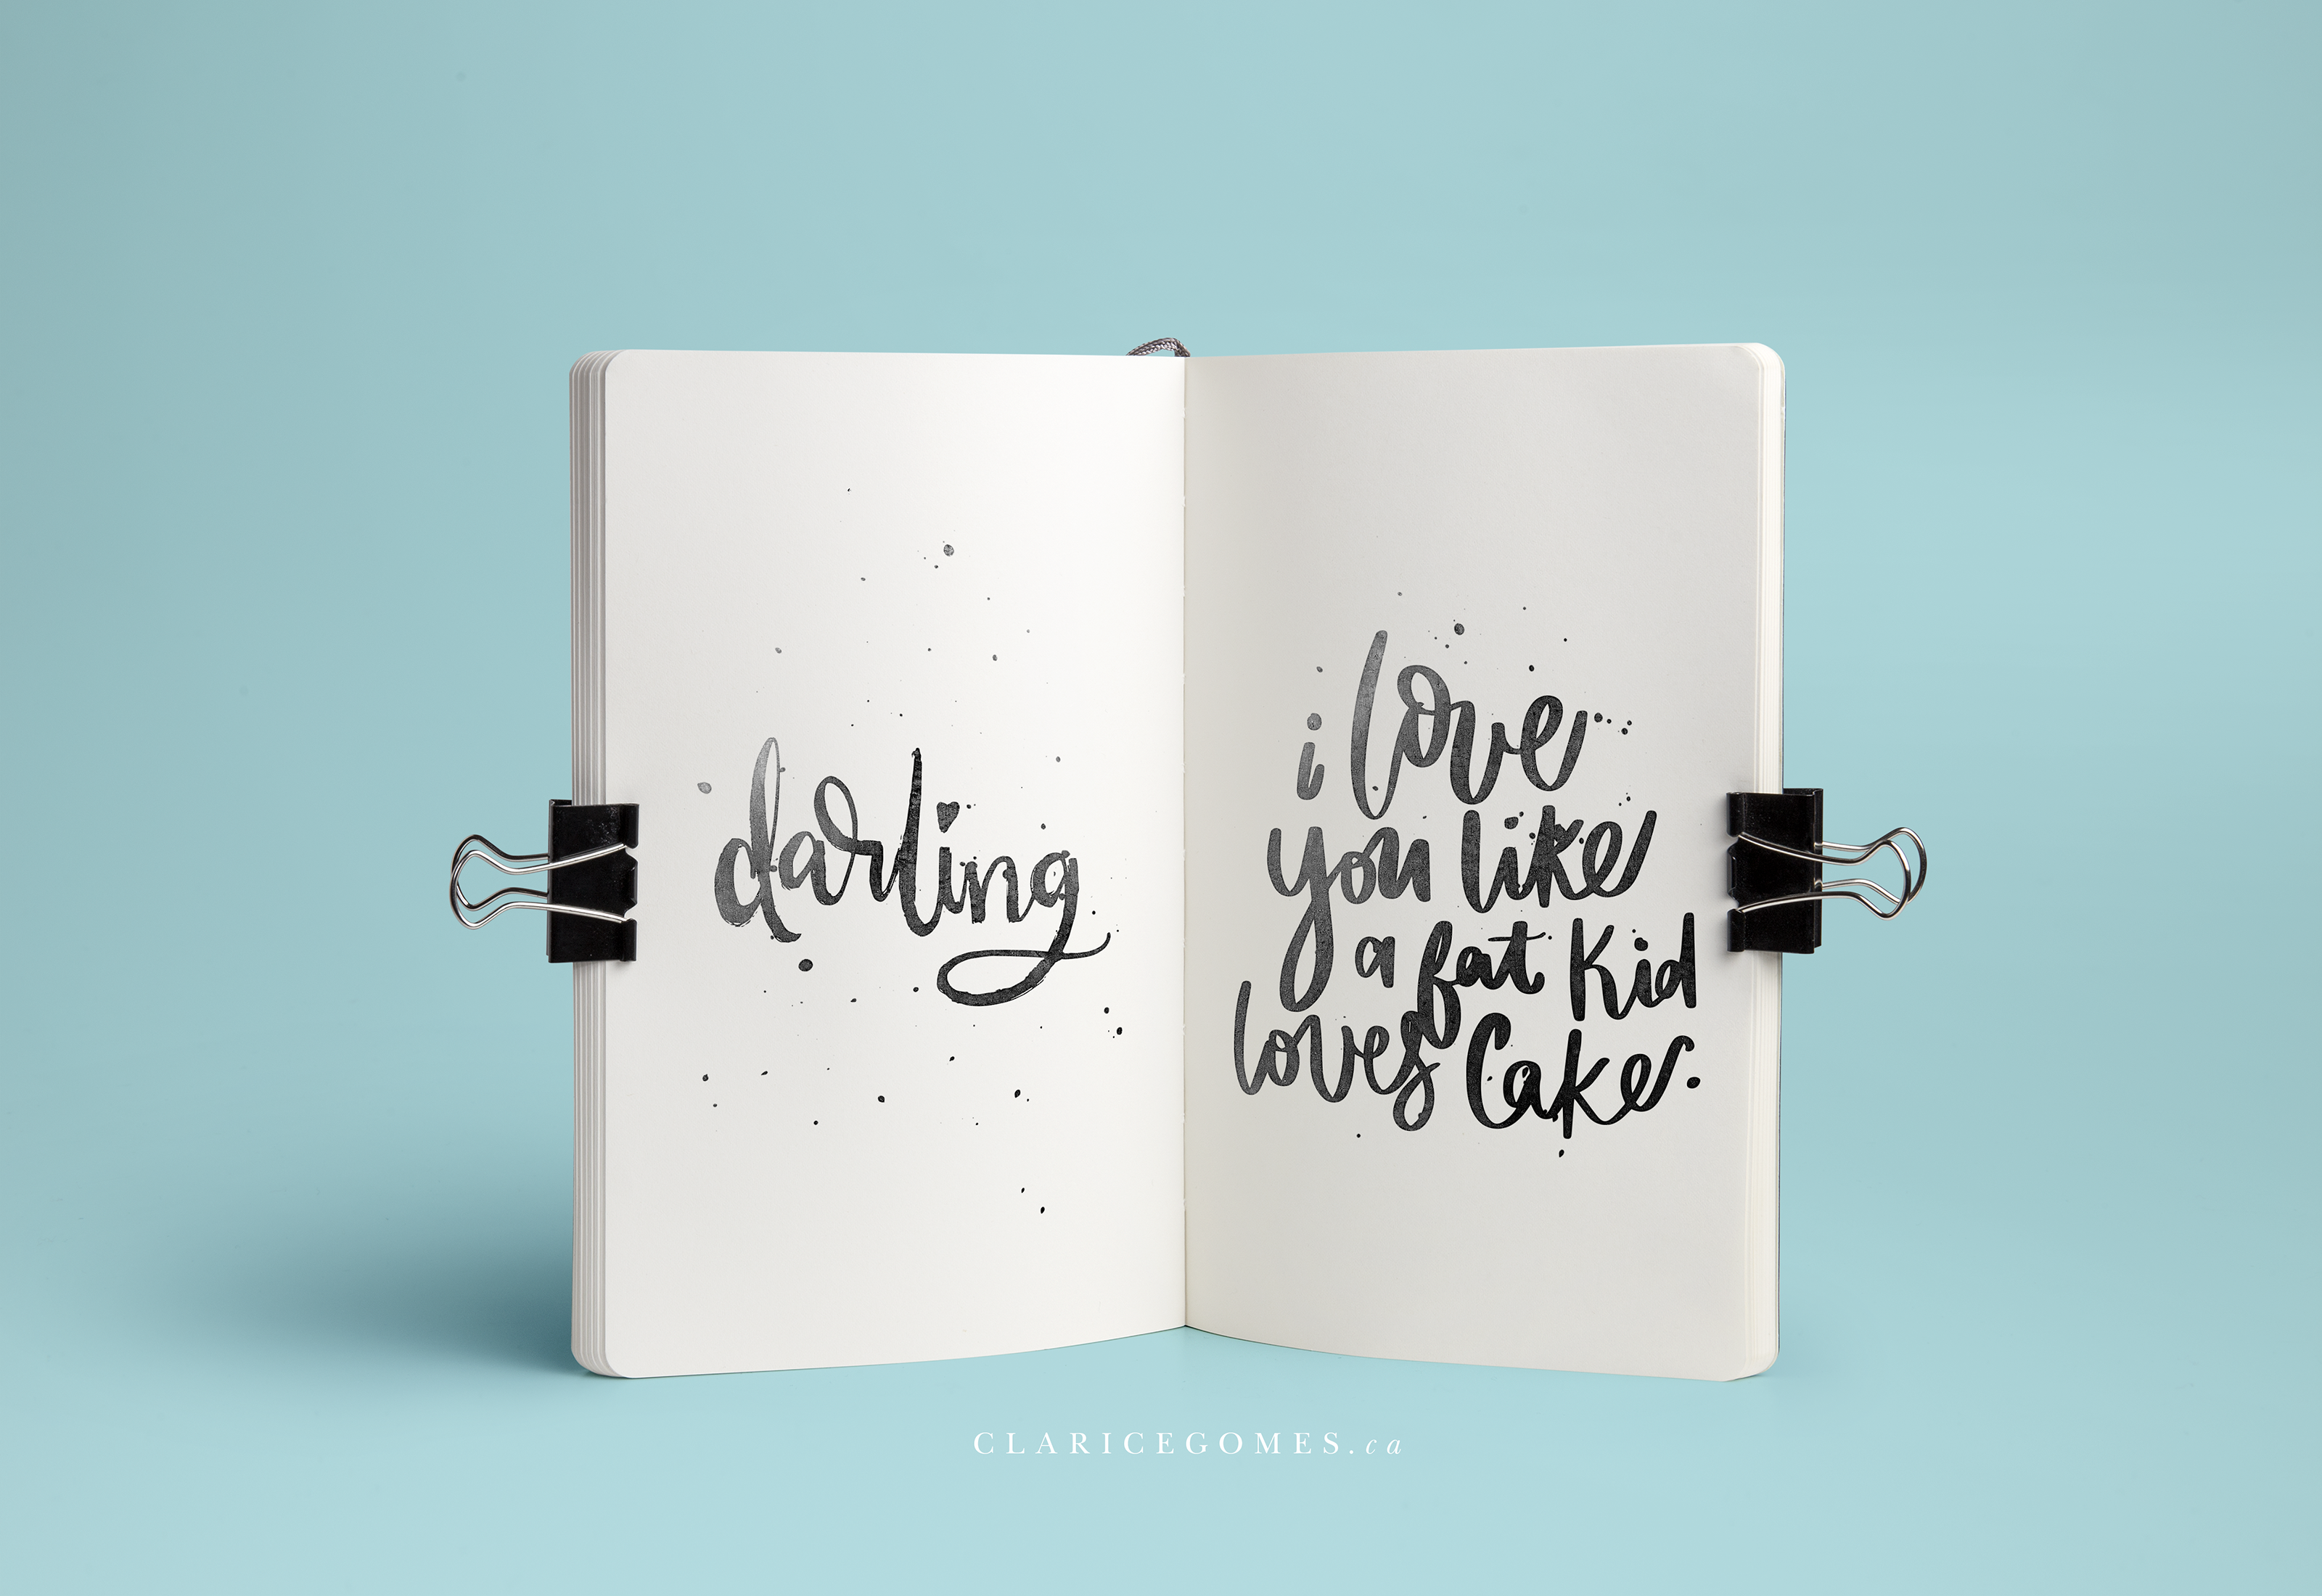 hand lettering clarice gomes designs